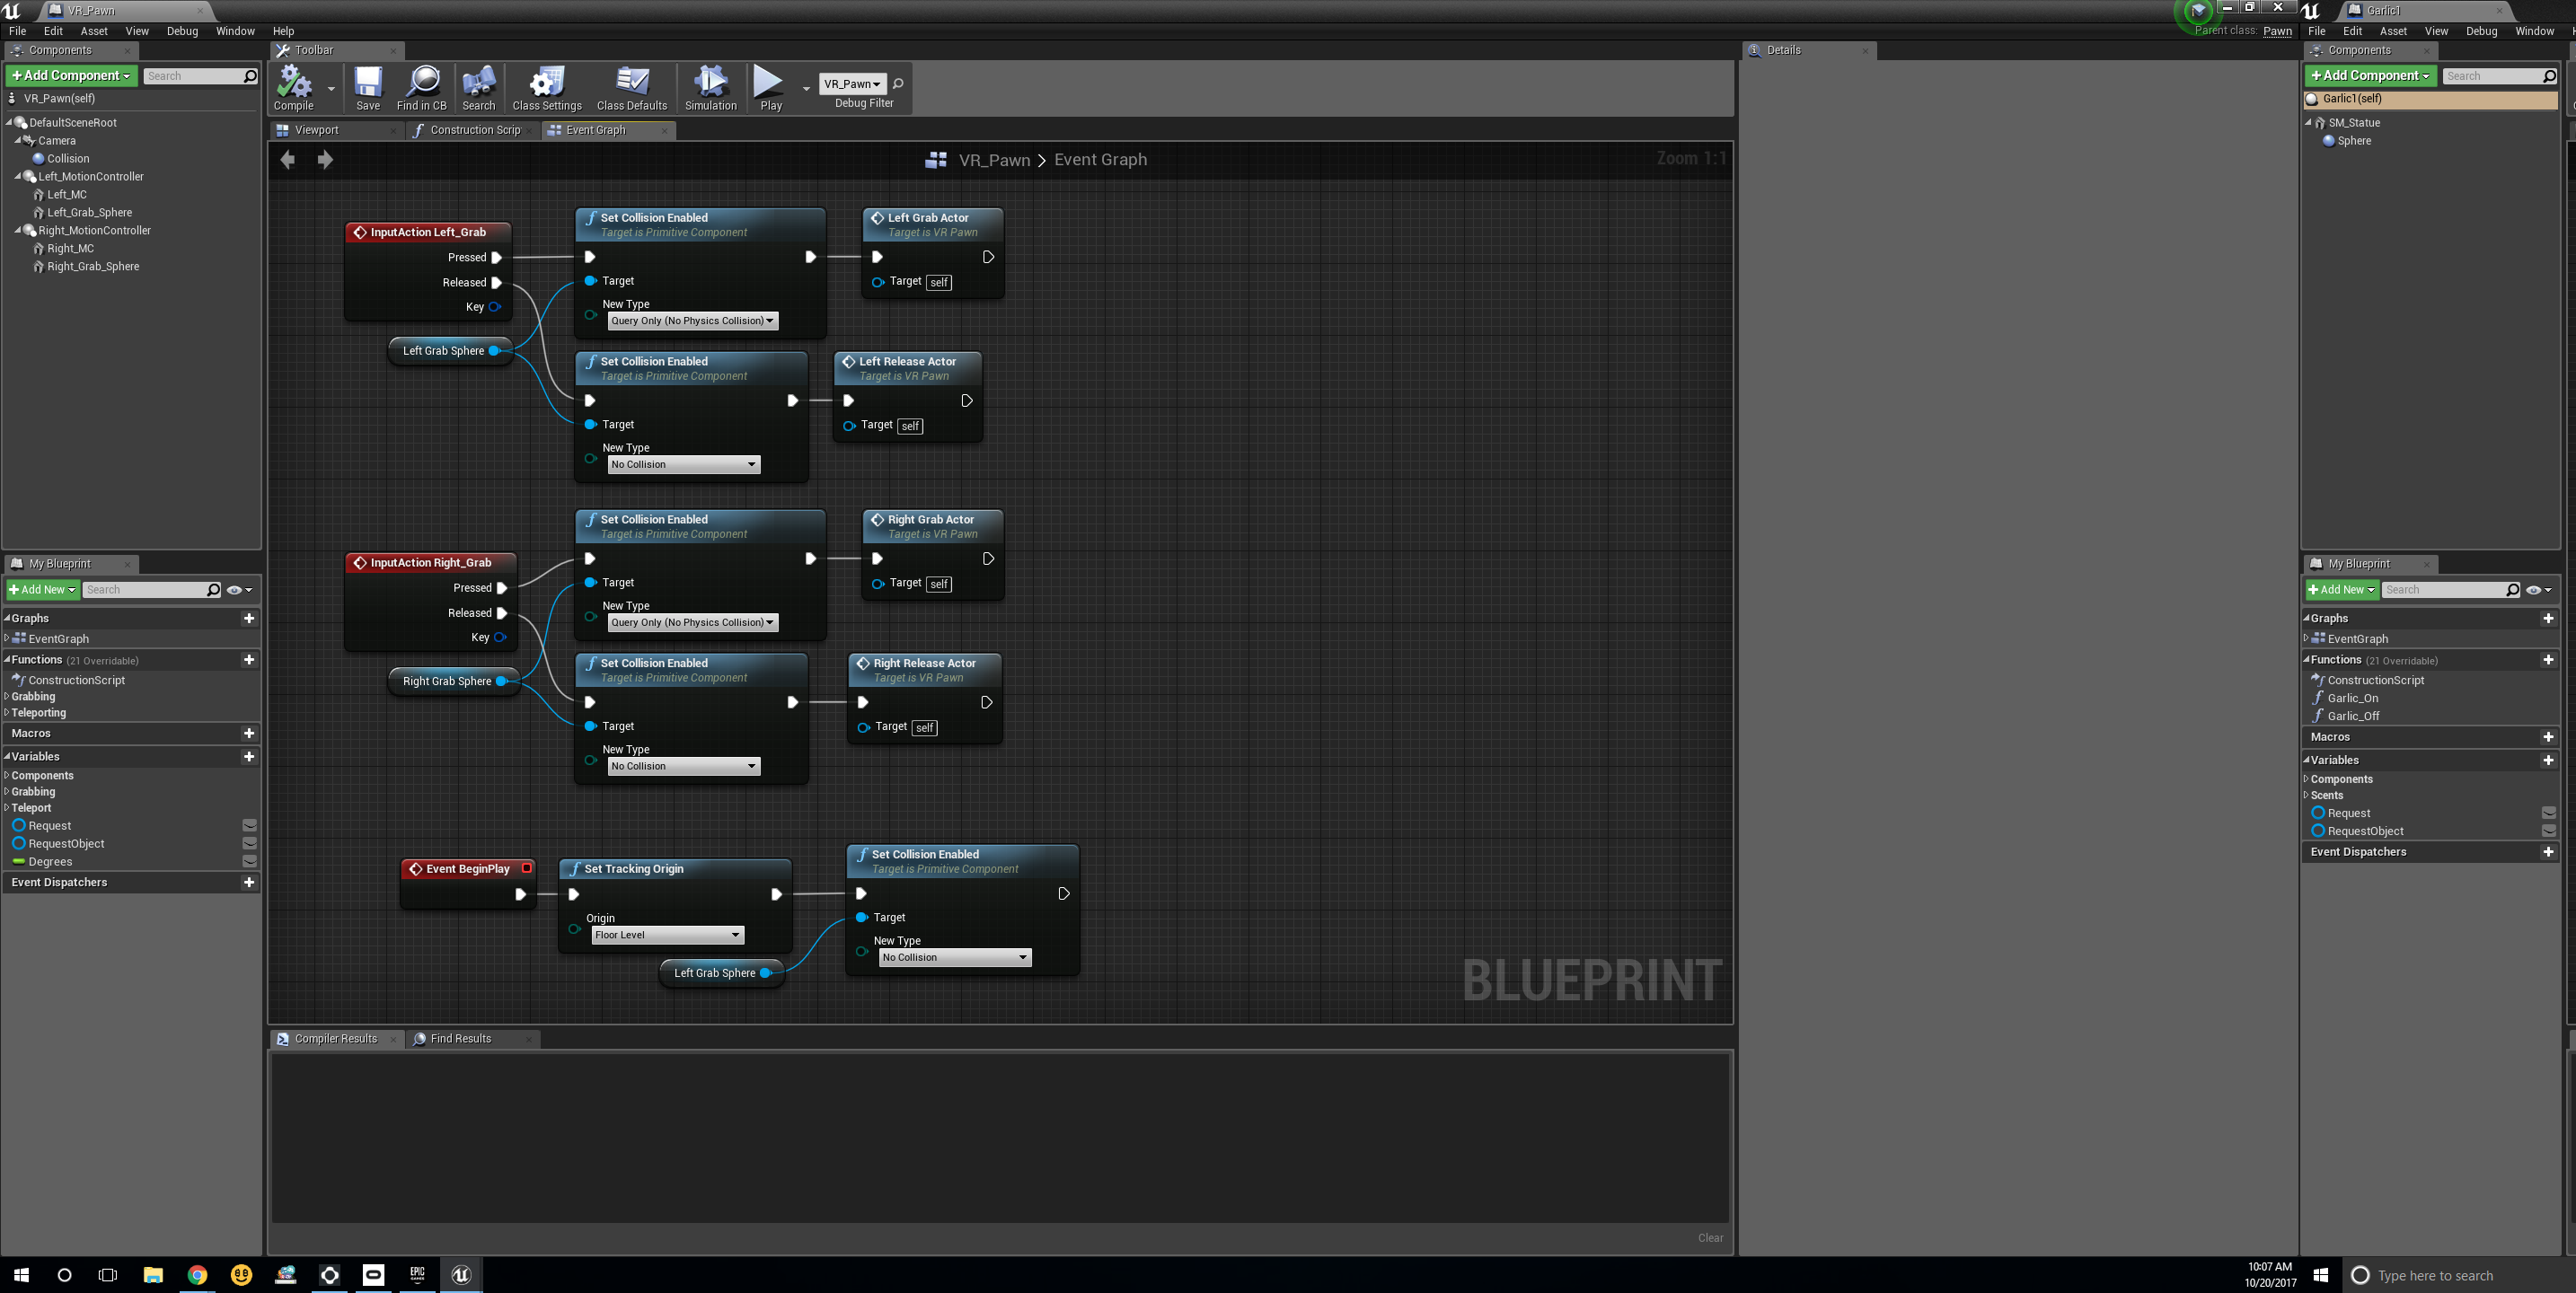 Pickup object and call function independently for each object oculus this is my blueprint malvernweather Images